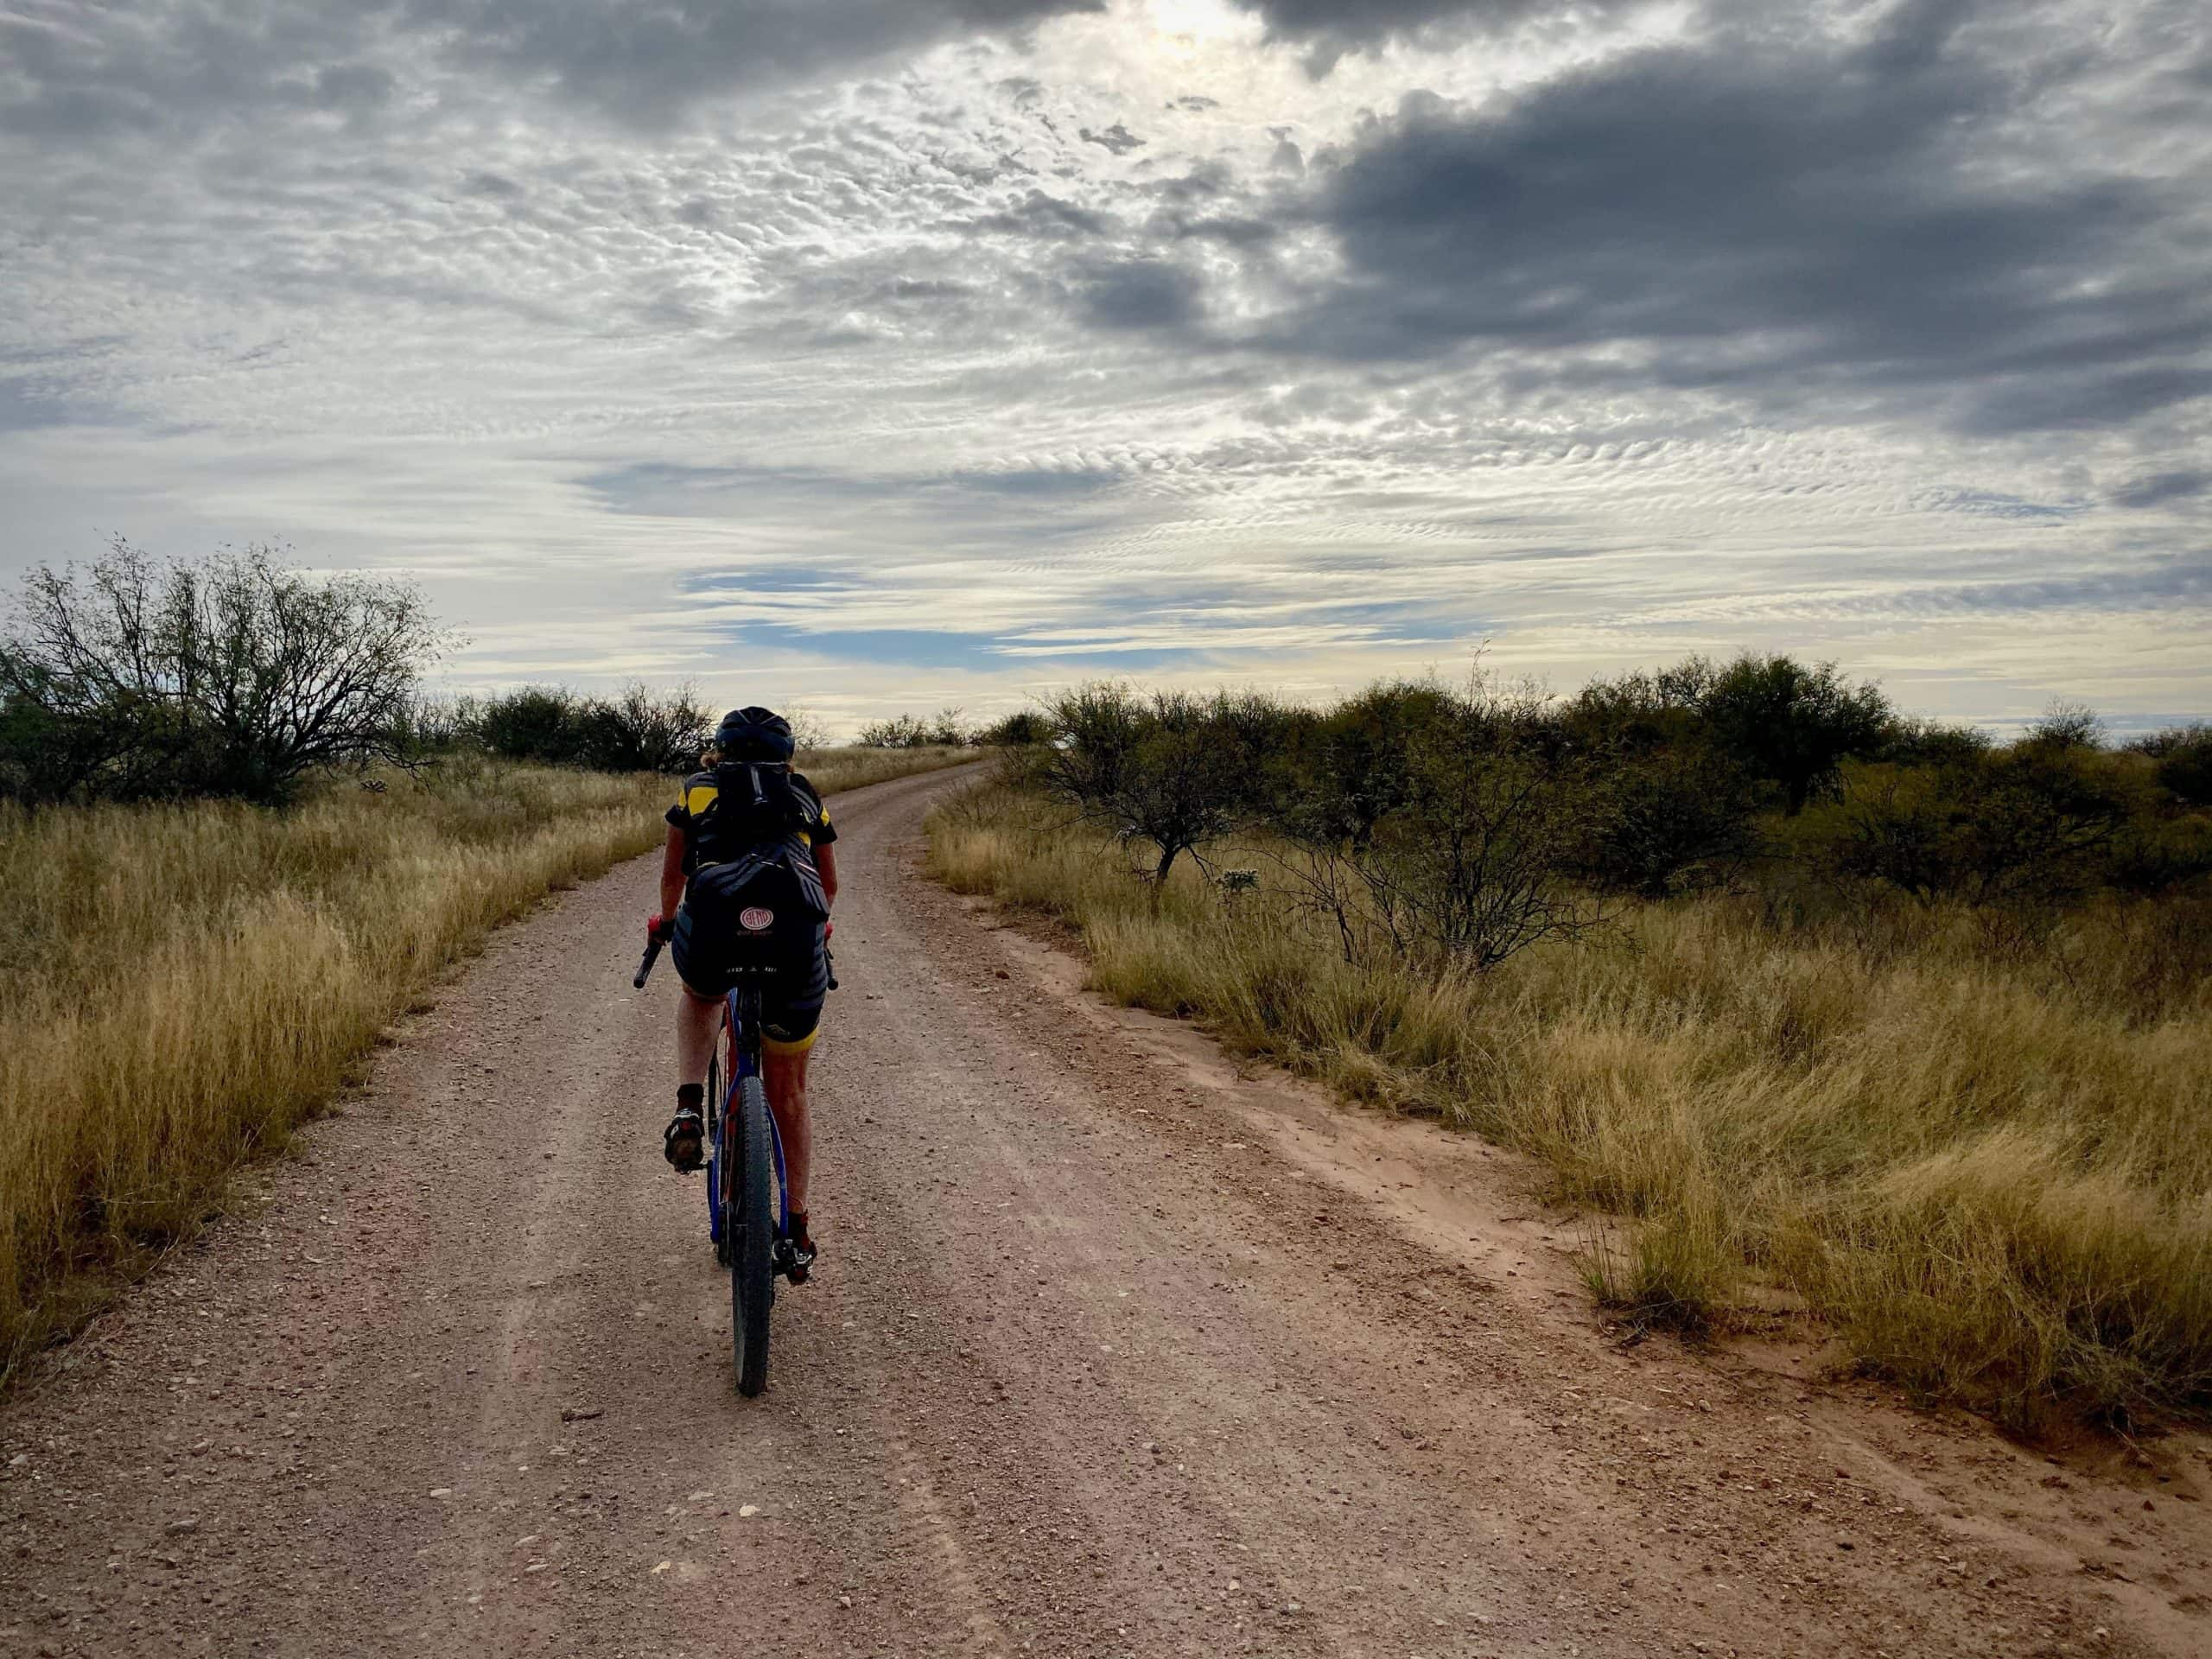 Cyclist riding the gravel / dirt roads in the grasslands of Buenos Aires National Wildlife Refuge.